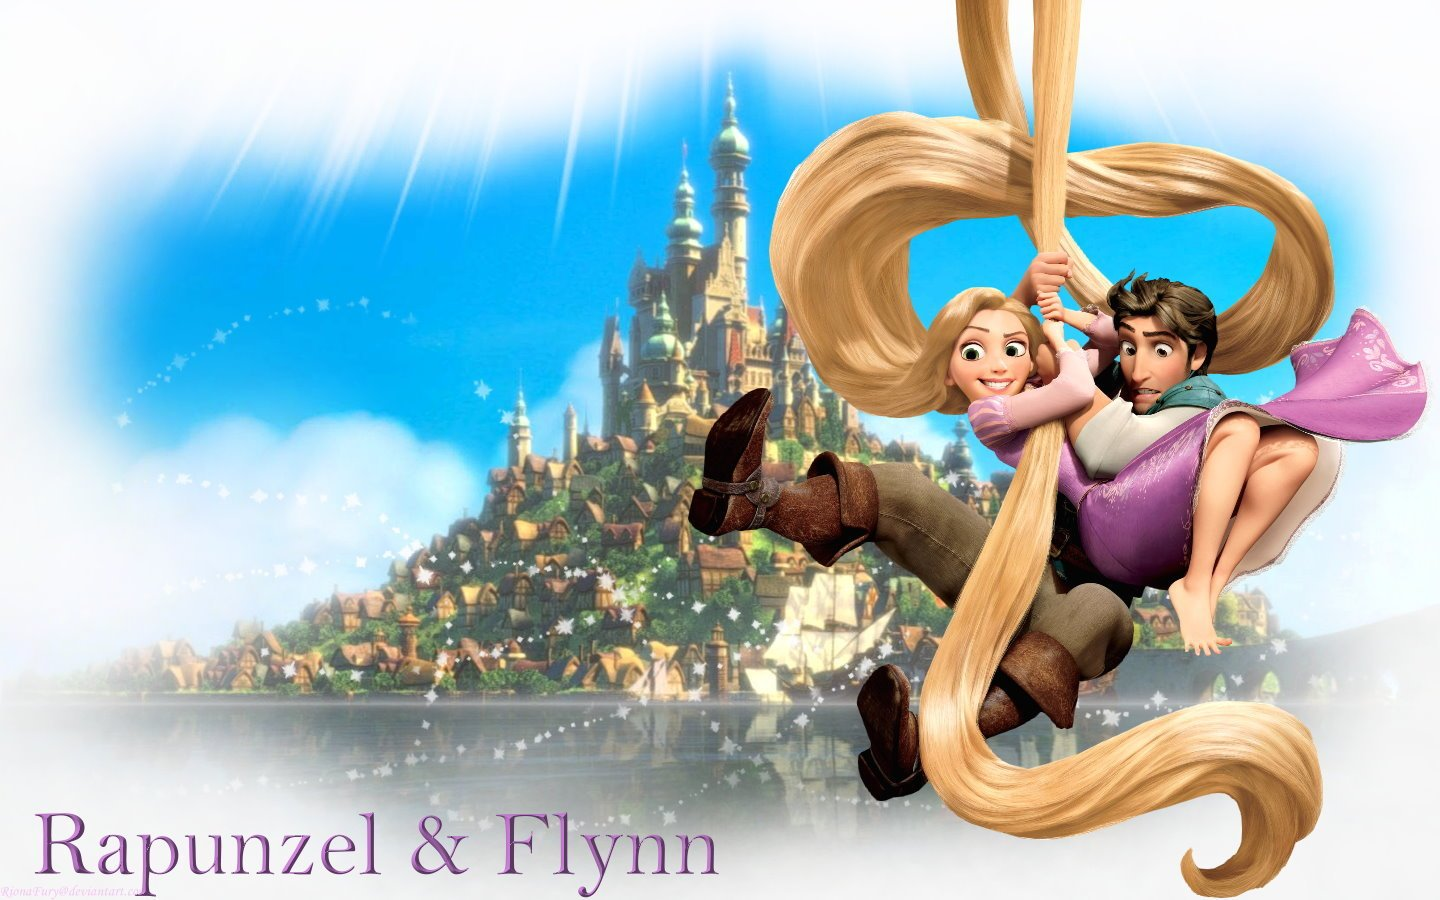 Rapunzel-and-Flynn-tangled-23744636-1440-900.jpg